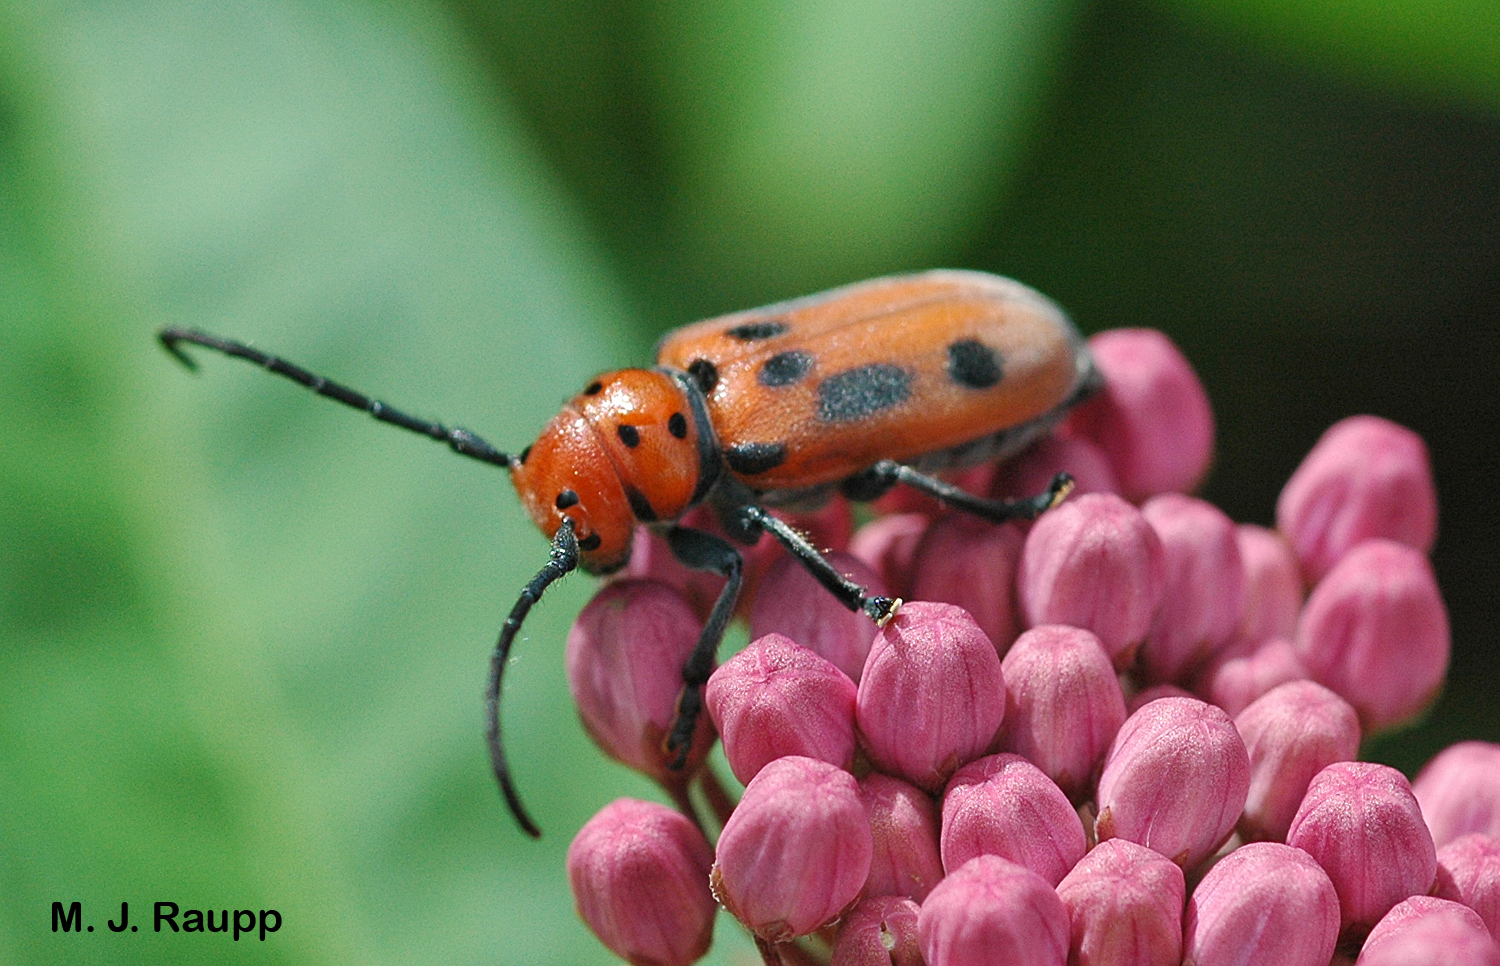 With antennae almost as long as its body it is easy to see where the milkweed longhorned beetle gets its name